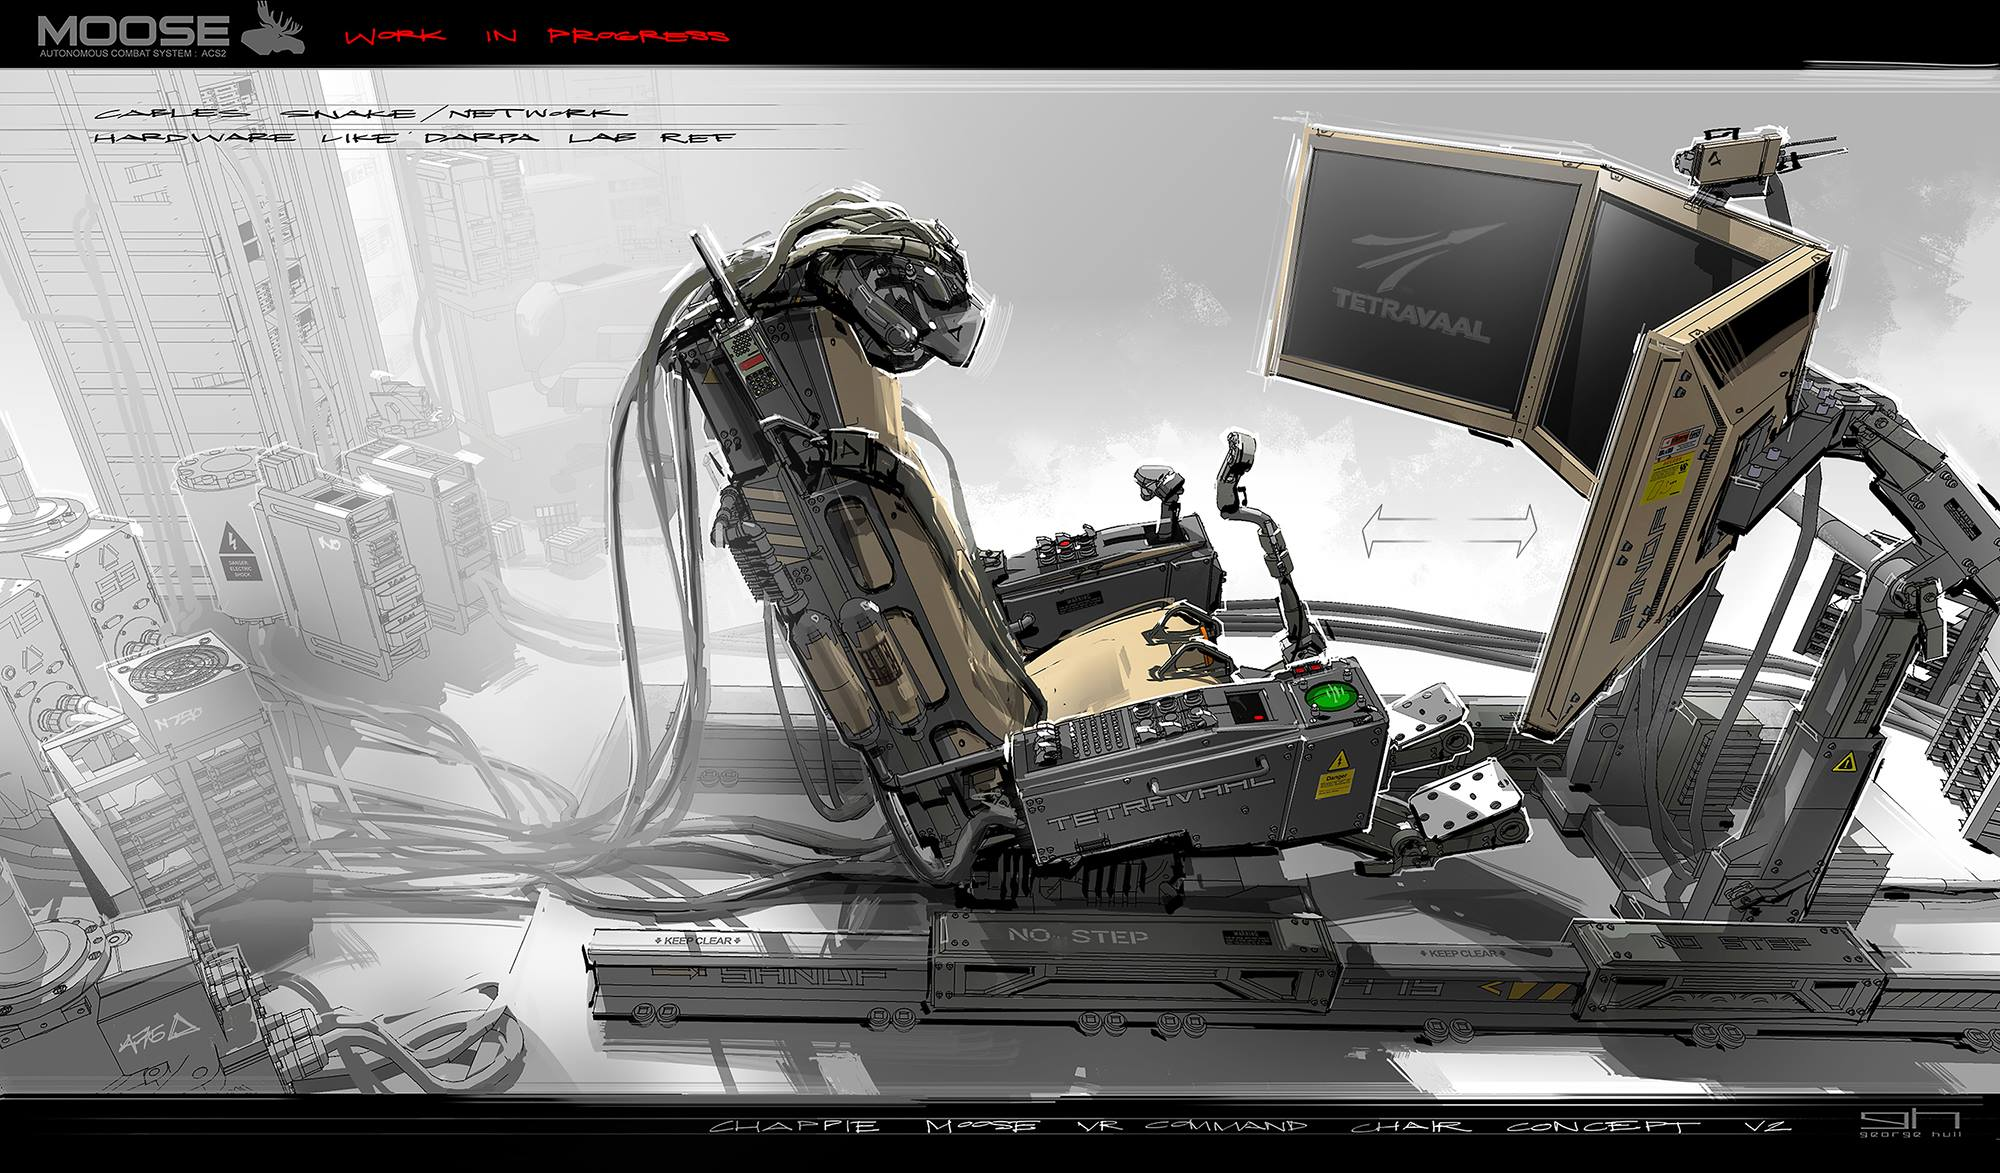 Chappie Concept Art by George Hull